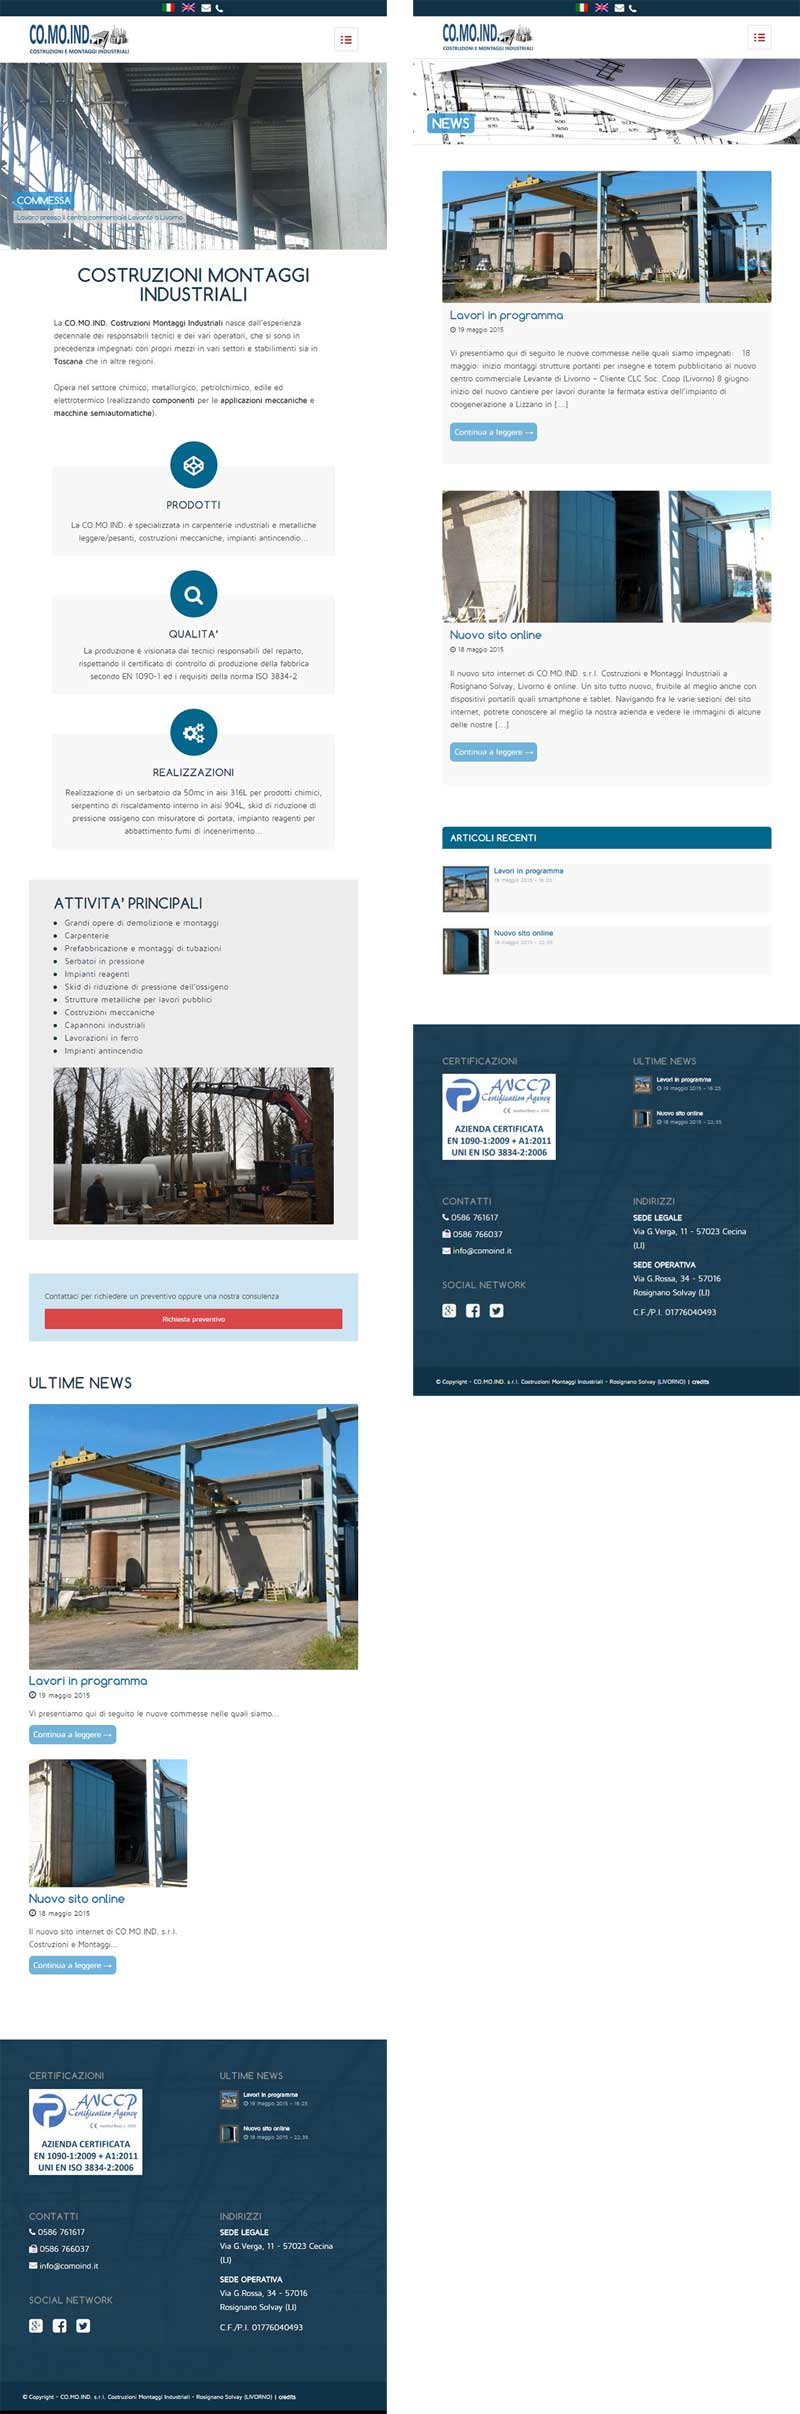 Comoind website pages responsive in mobile view